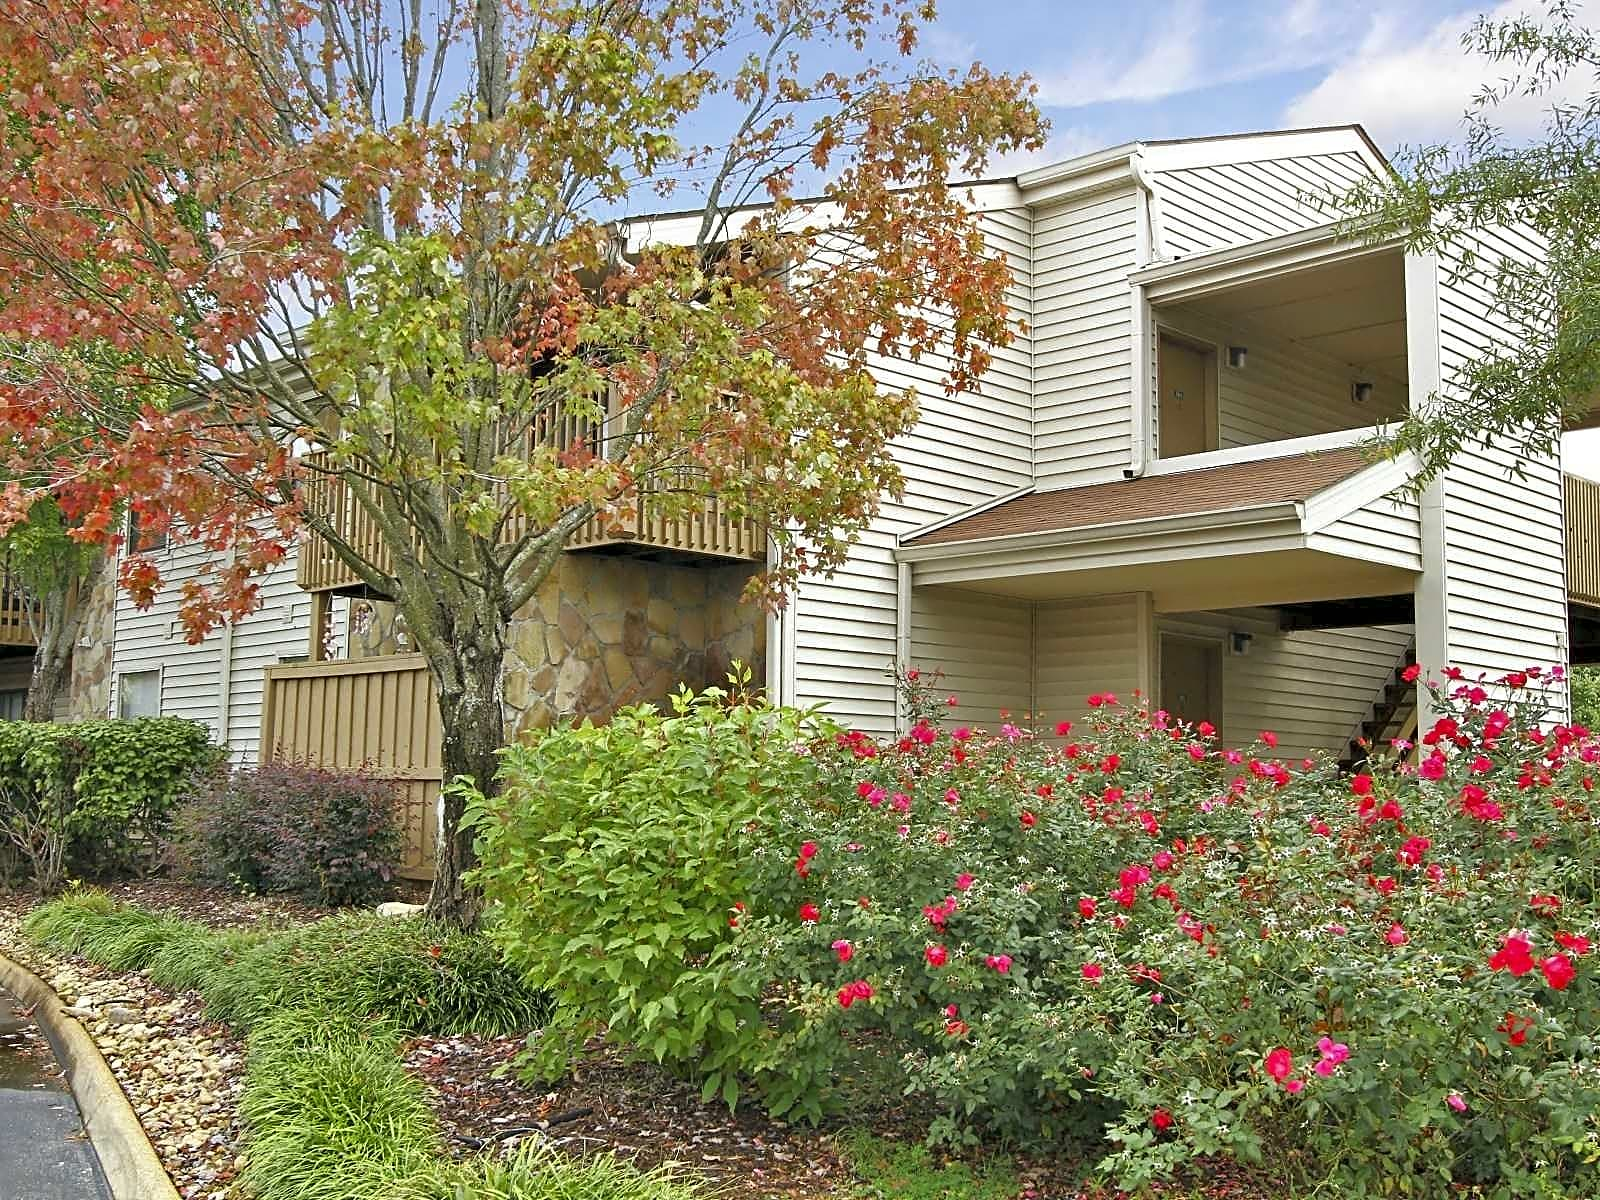 Photo: Chattanooga Apartment for Rent - $566.00 / month; 1 Bd & 1 Ba